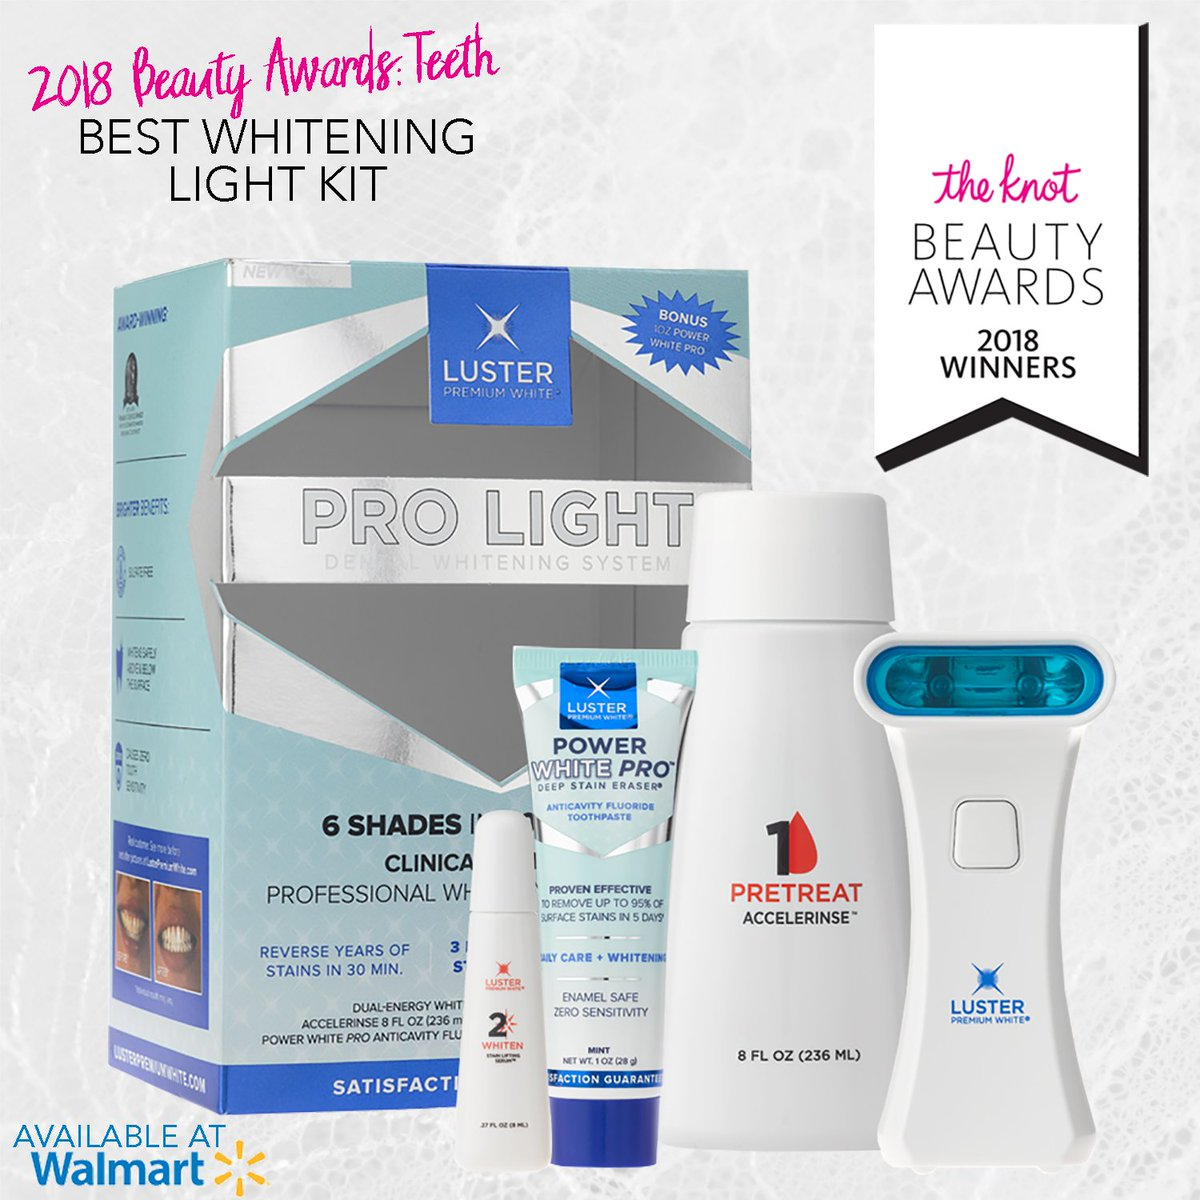 Luster Premium White On Twitter See For Yourself Why Theknot Named Luster Pro Light The Best Whitening Light Kit Available At Select Walmart Stores Nationwide Click Here To Save 7 On Your